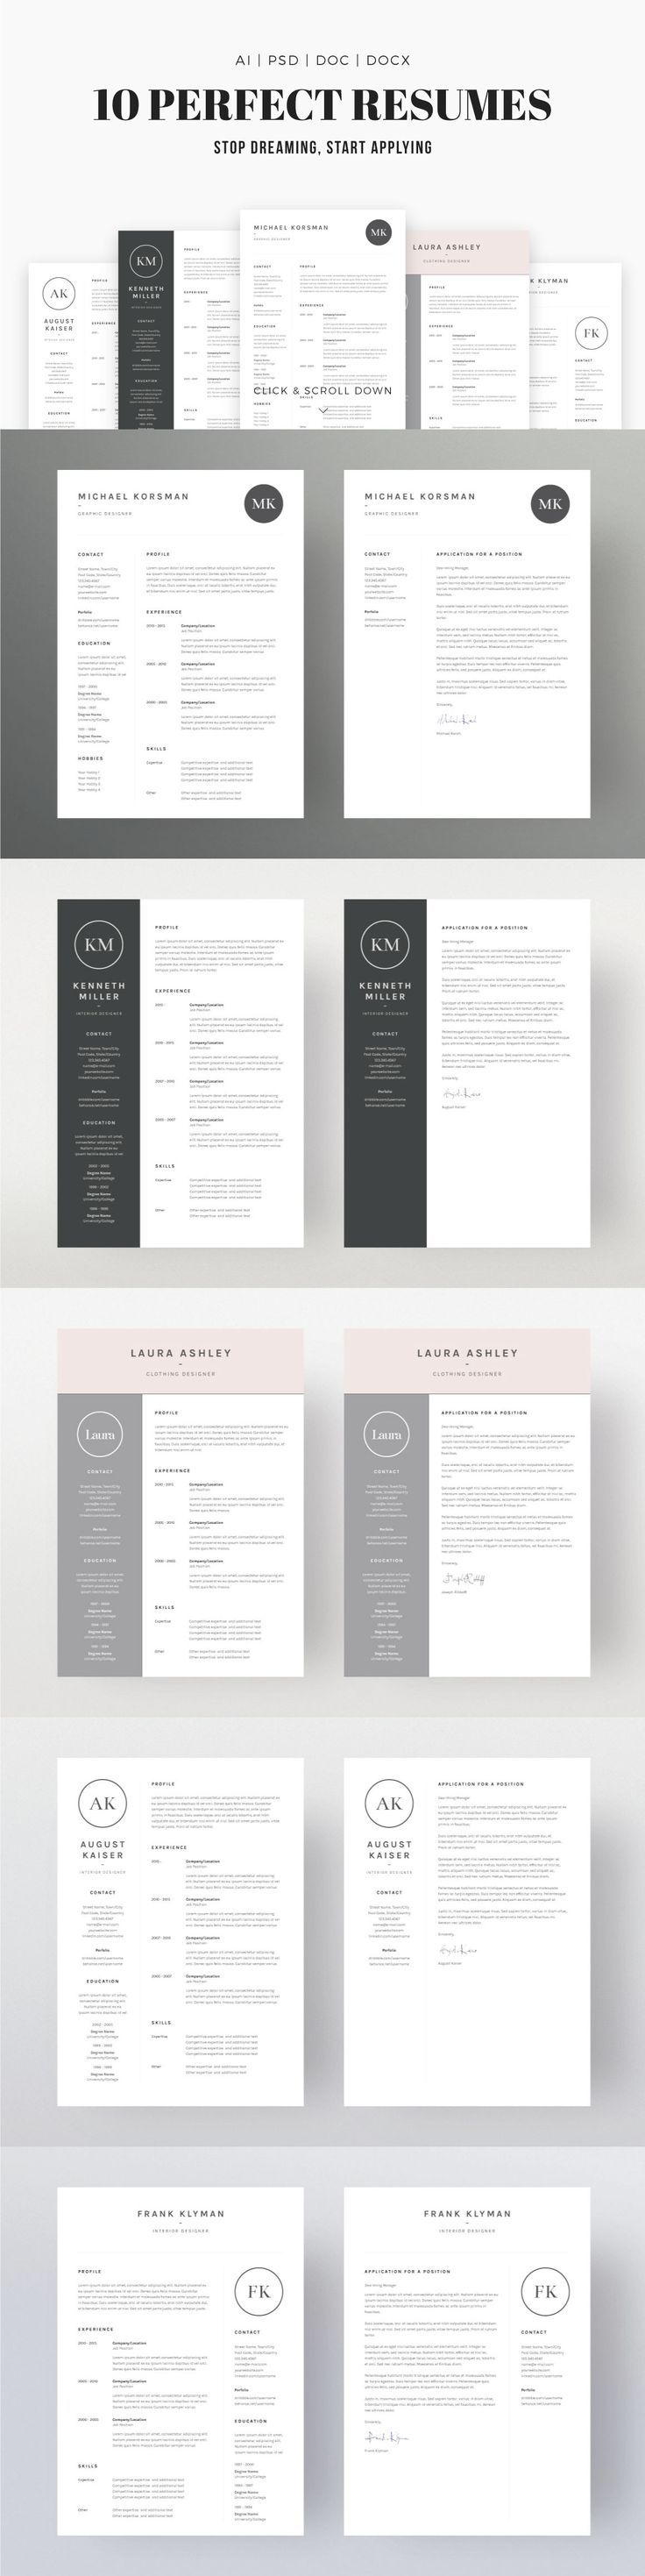 Job Seeker's Dream Bundle: Professional, downloadable resume template designs